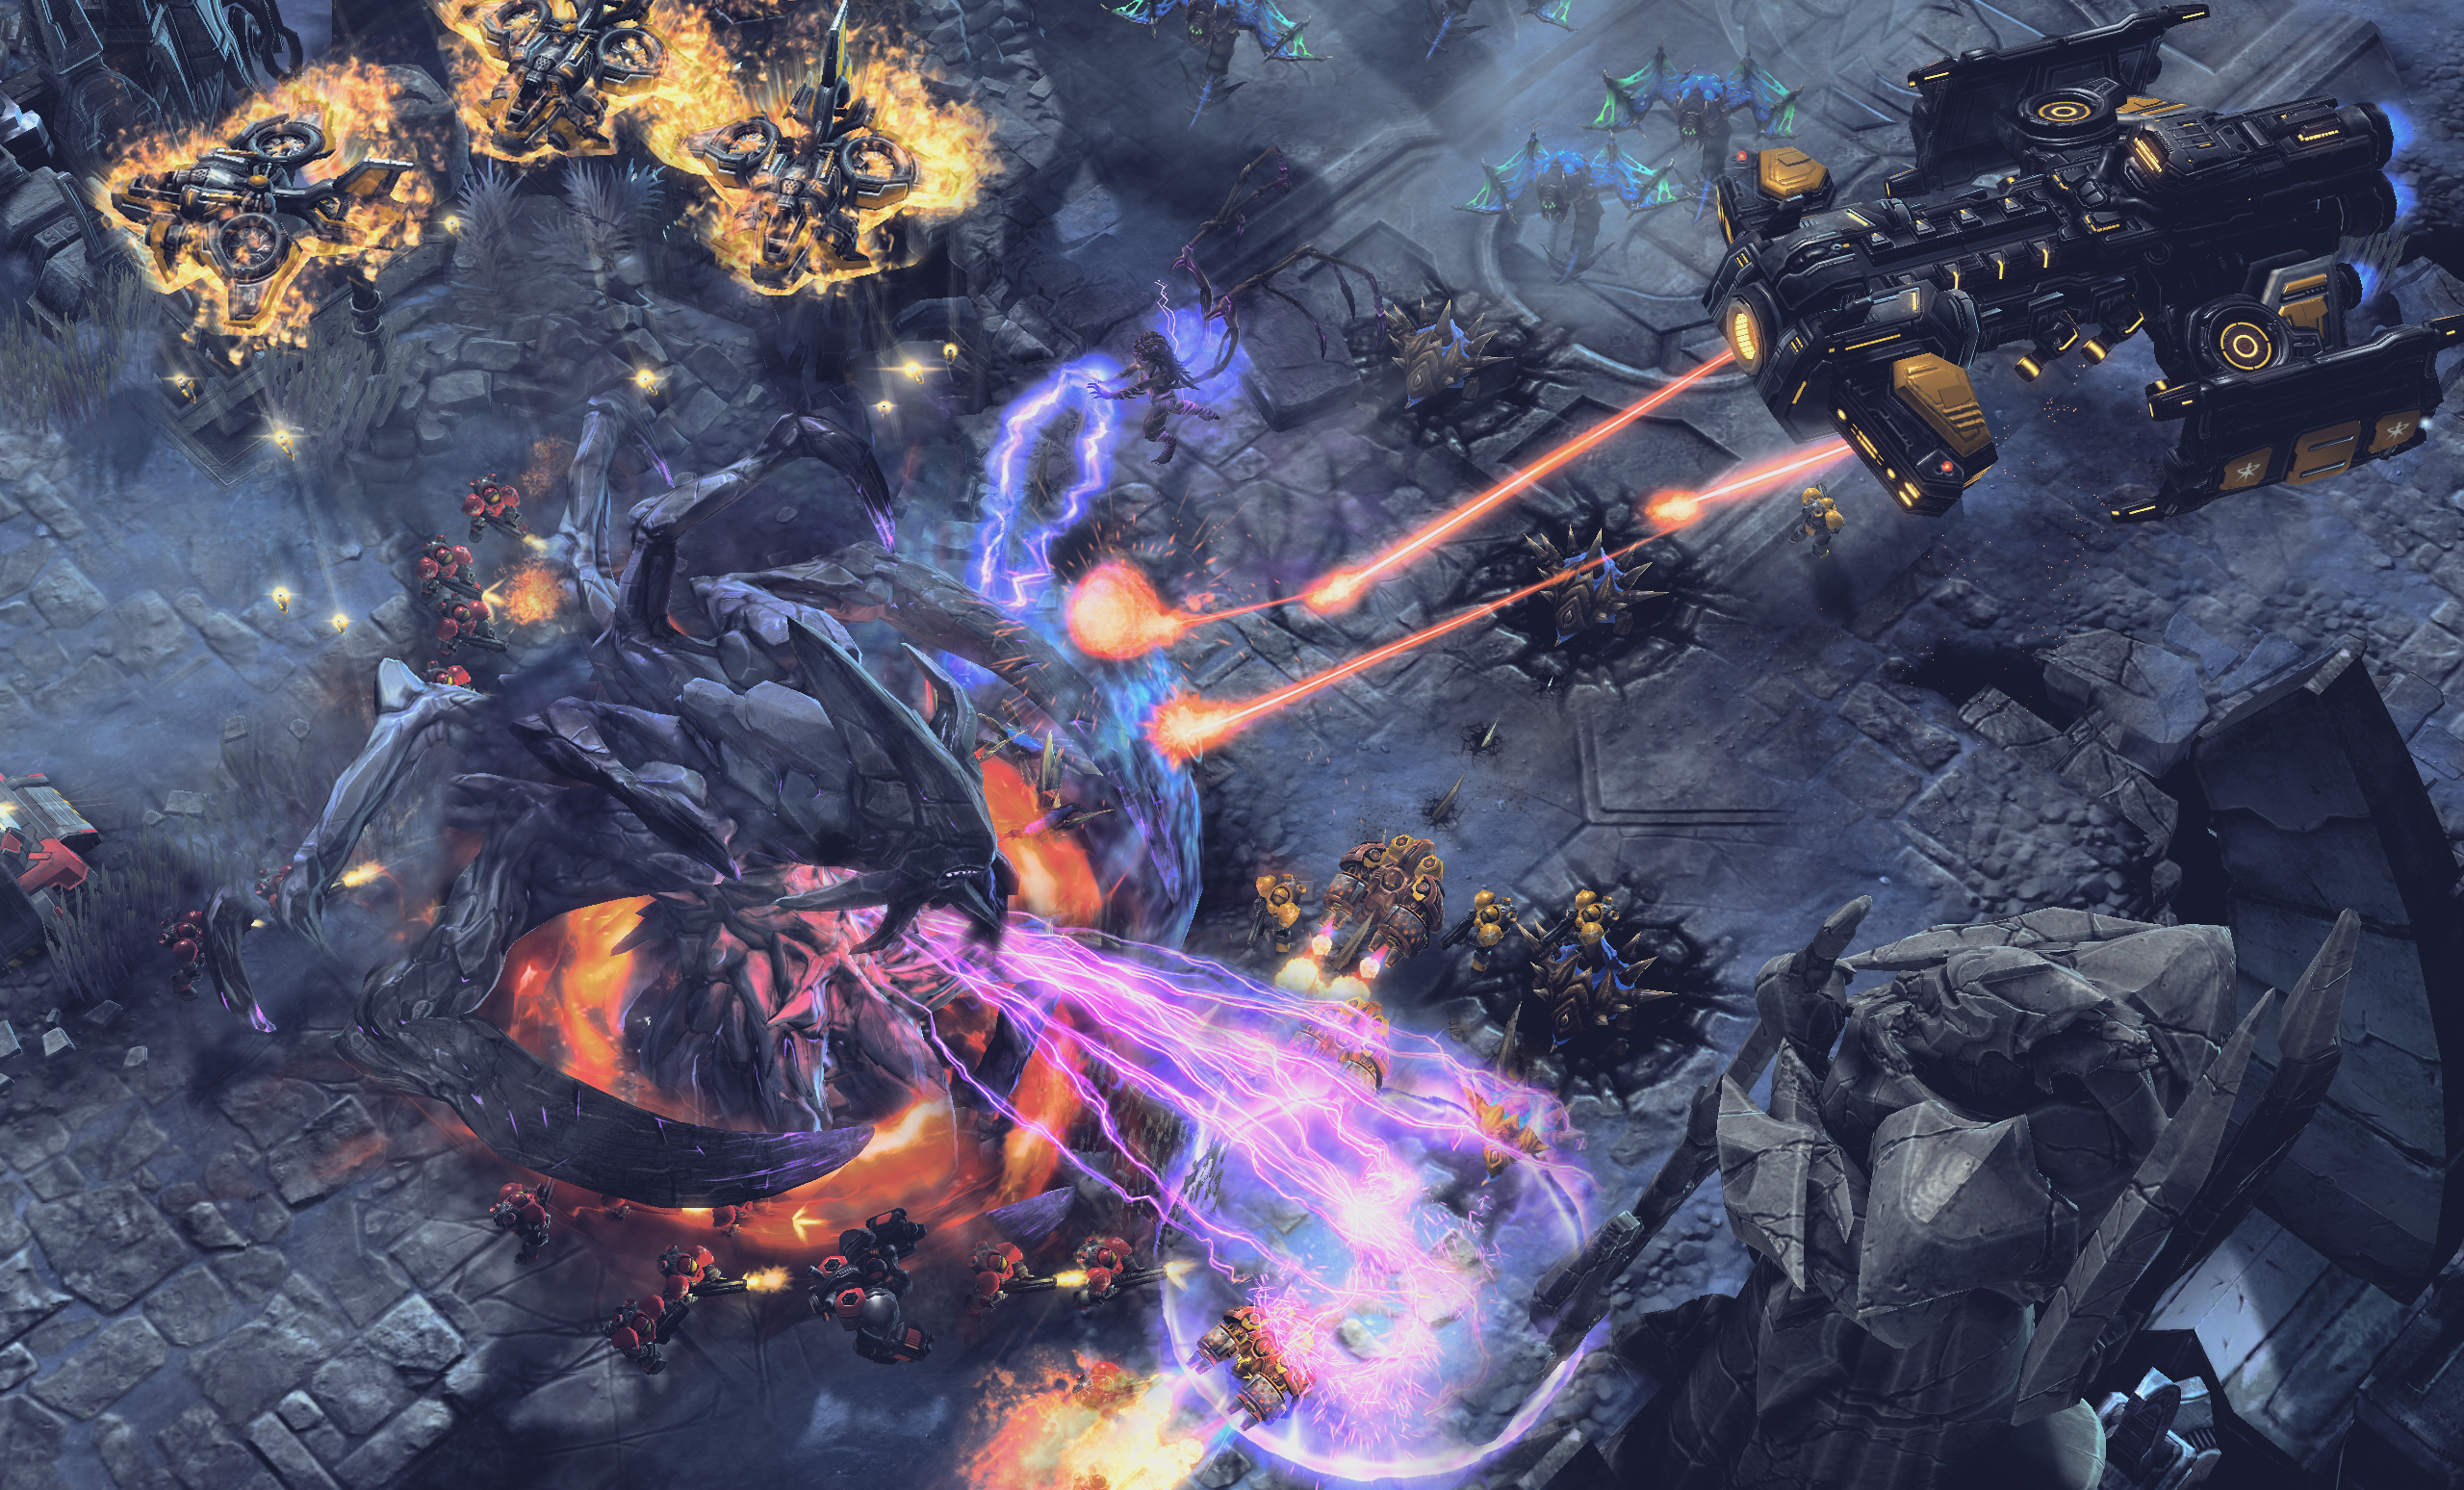 Legacy of the Void is the weakest of StarCraft II's single